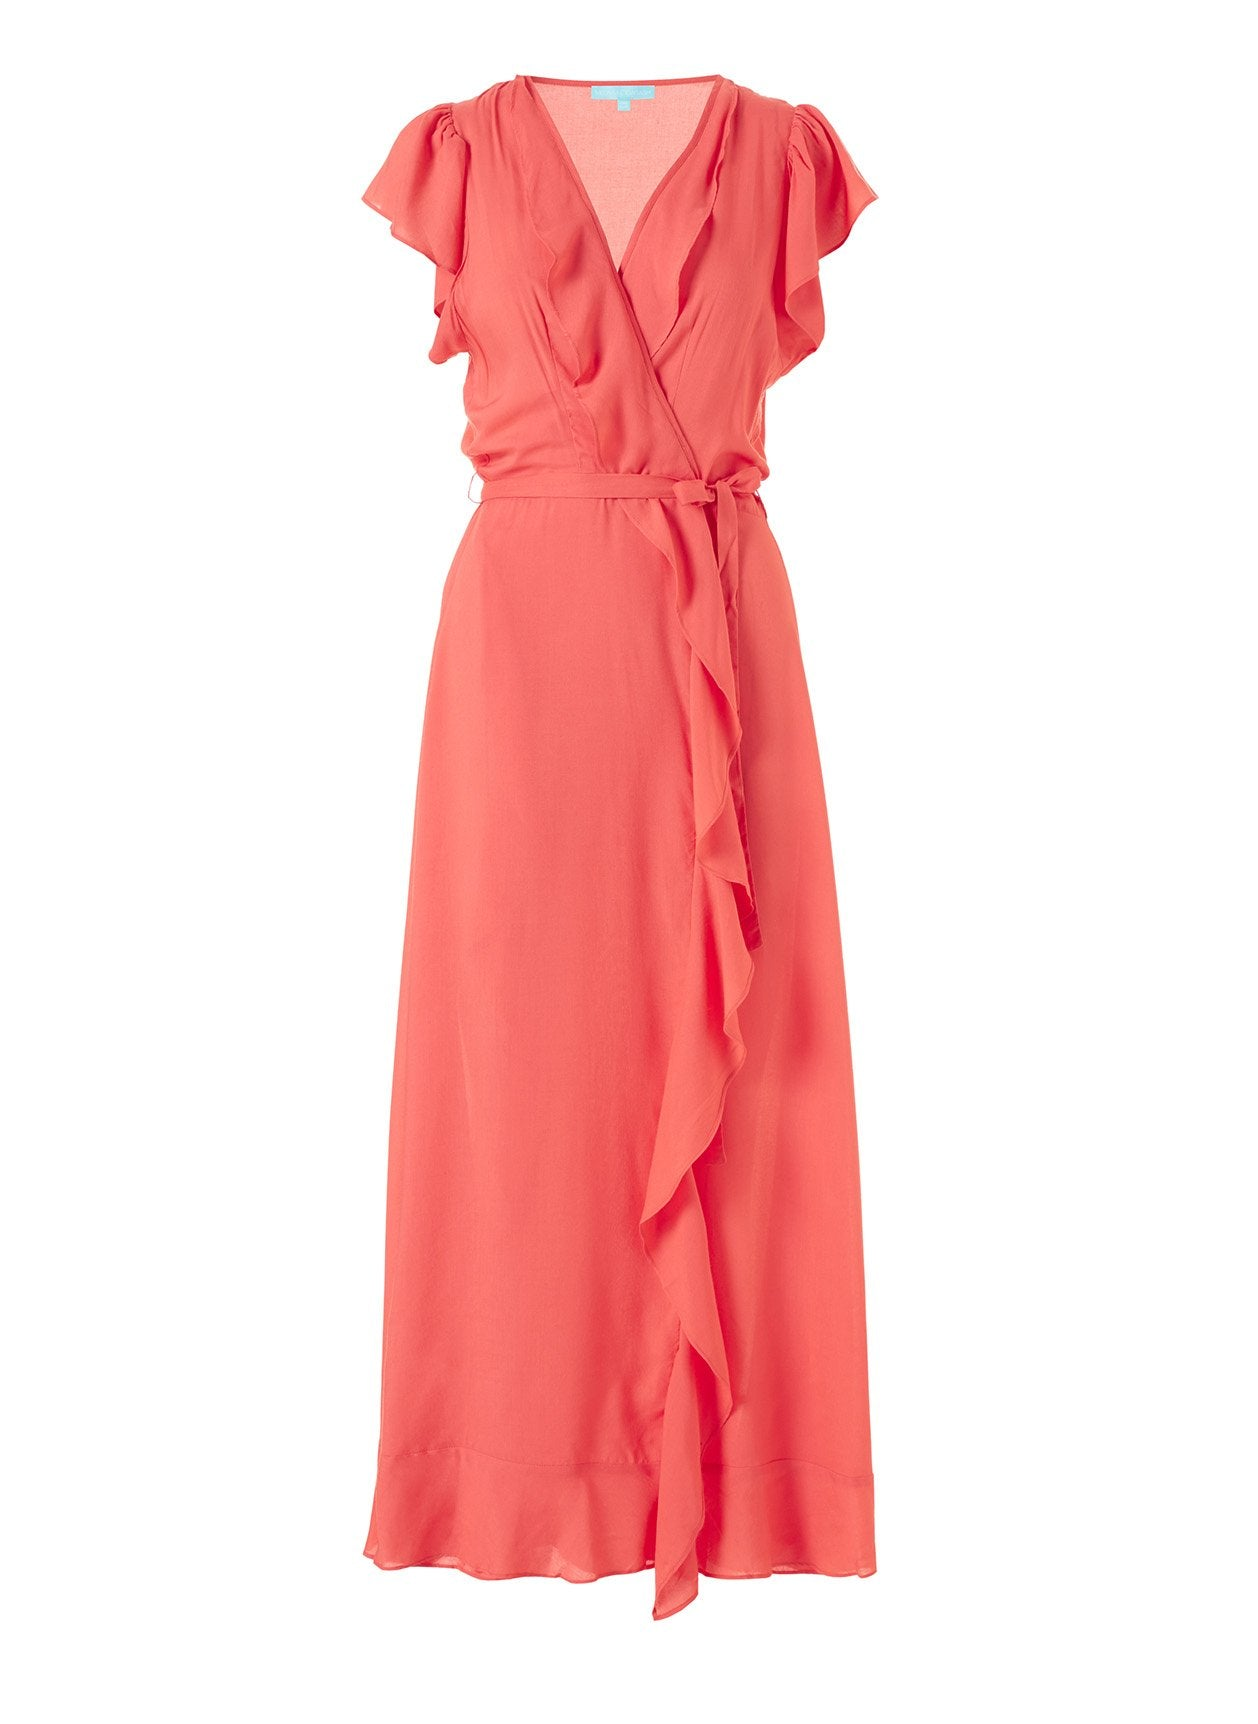 Brianna Tangerinefrill Wrap Front Maxi Dress 2020